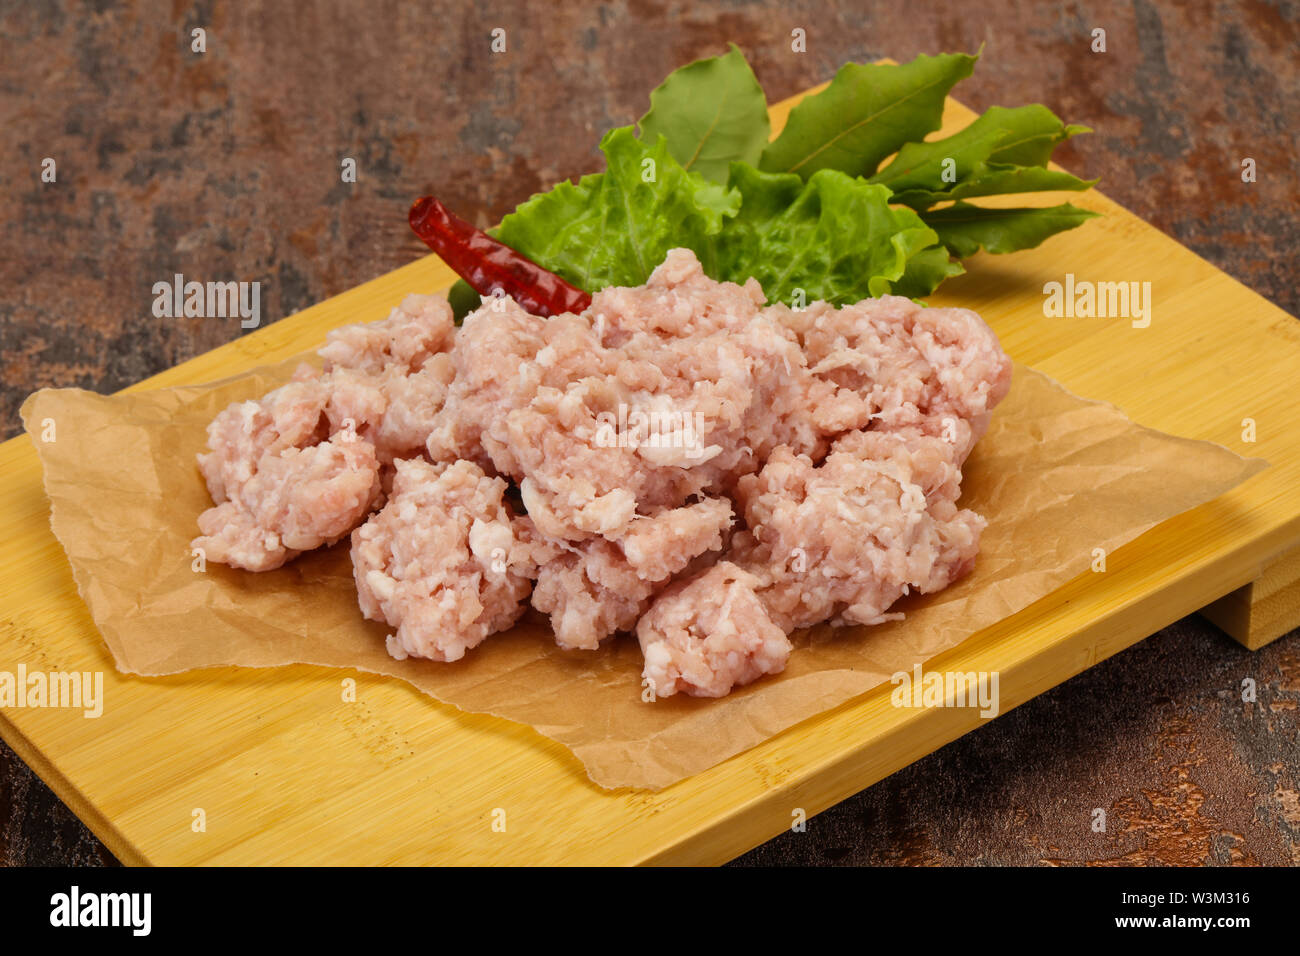 Homemade pork minced meat ready for cooking - Stock Image